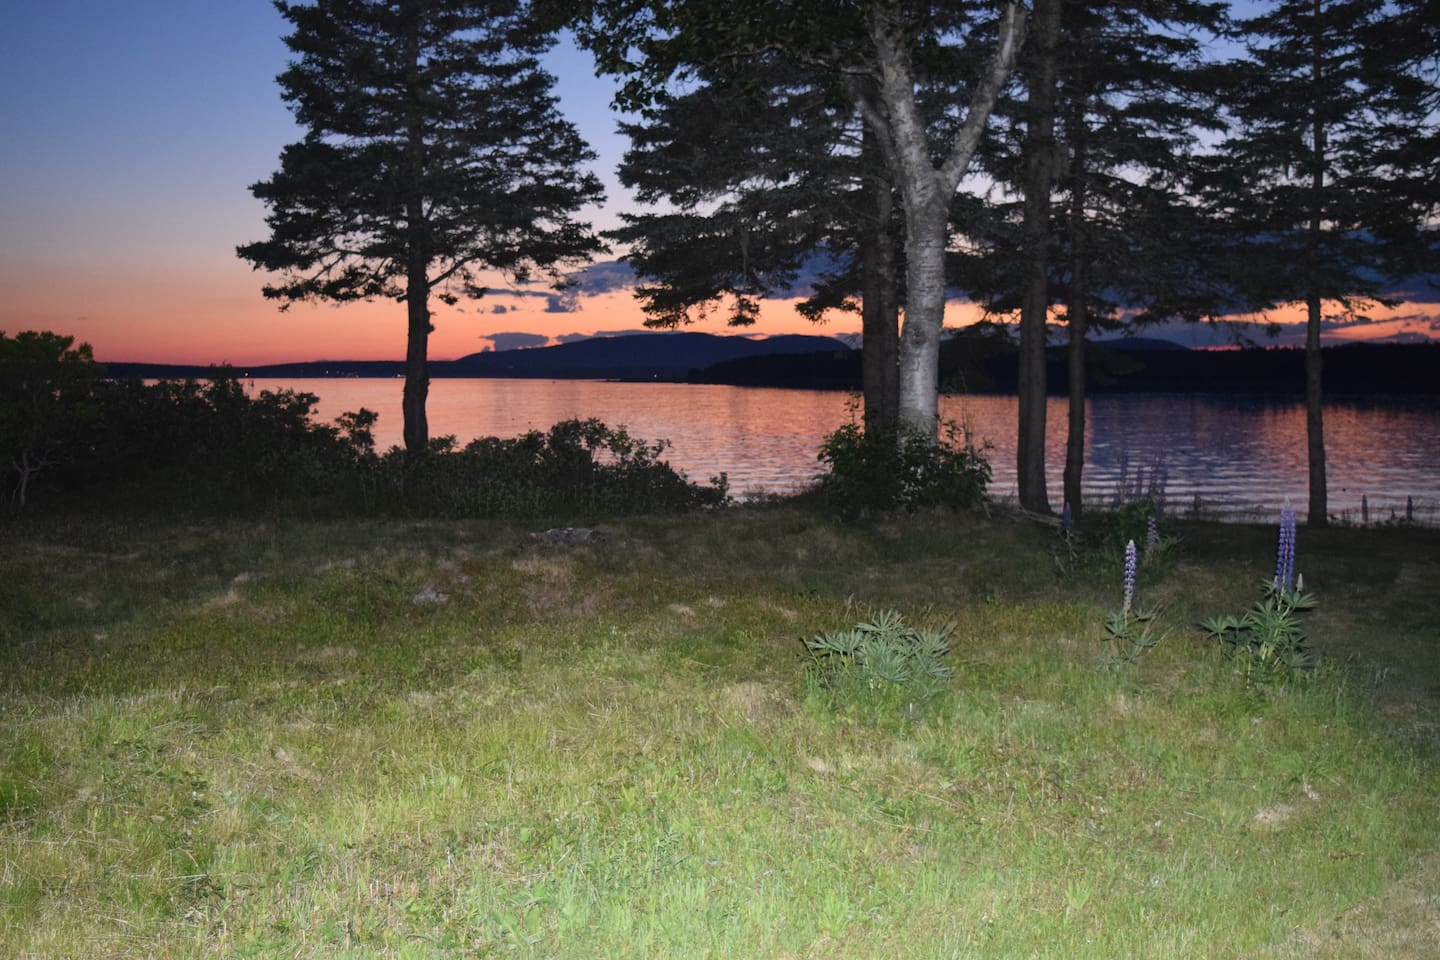 On Little Cranberry Island, Eagle Point offers a sweeping view of Mount Desert Island's mountains as well as to the east and west.